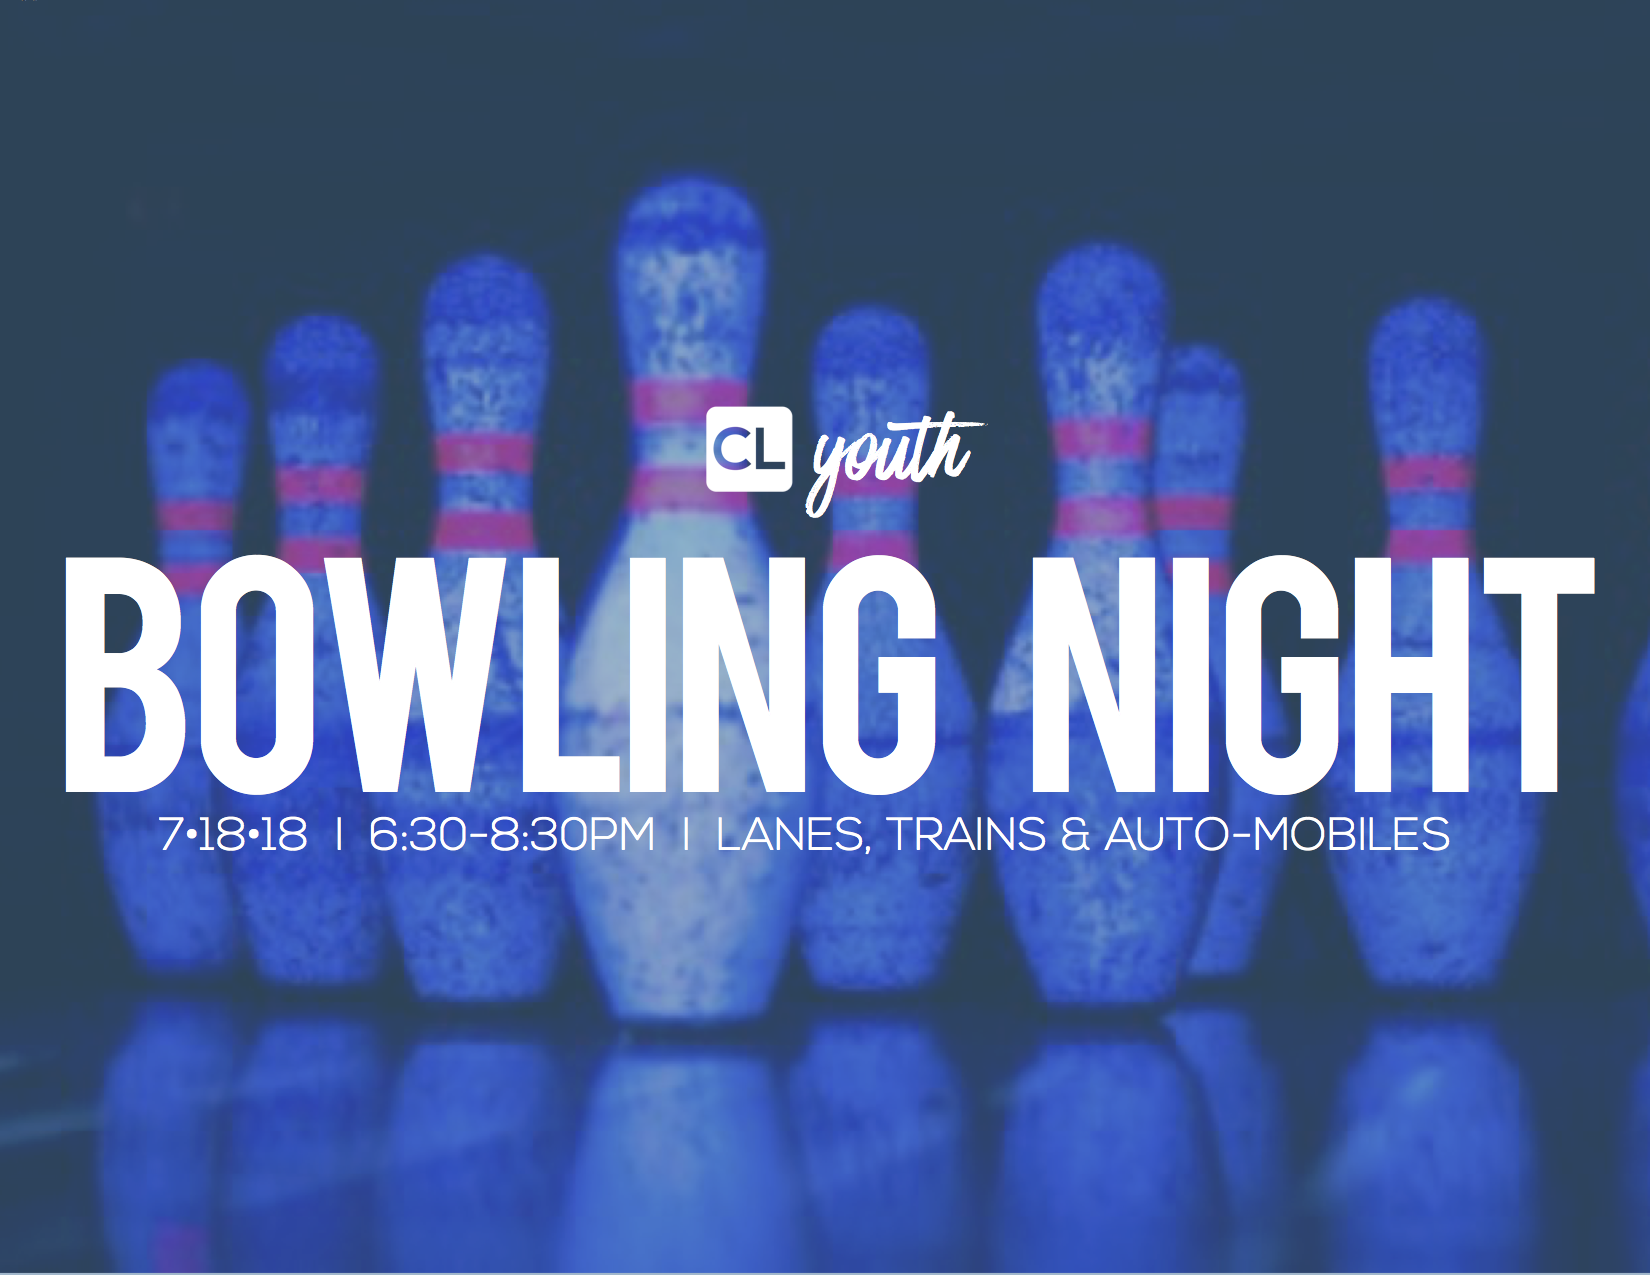 Bowling night graphic